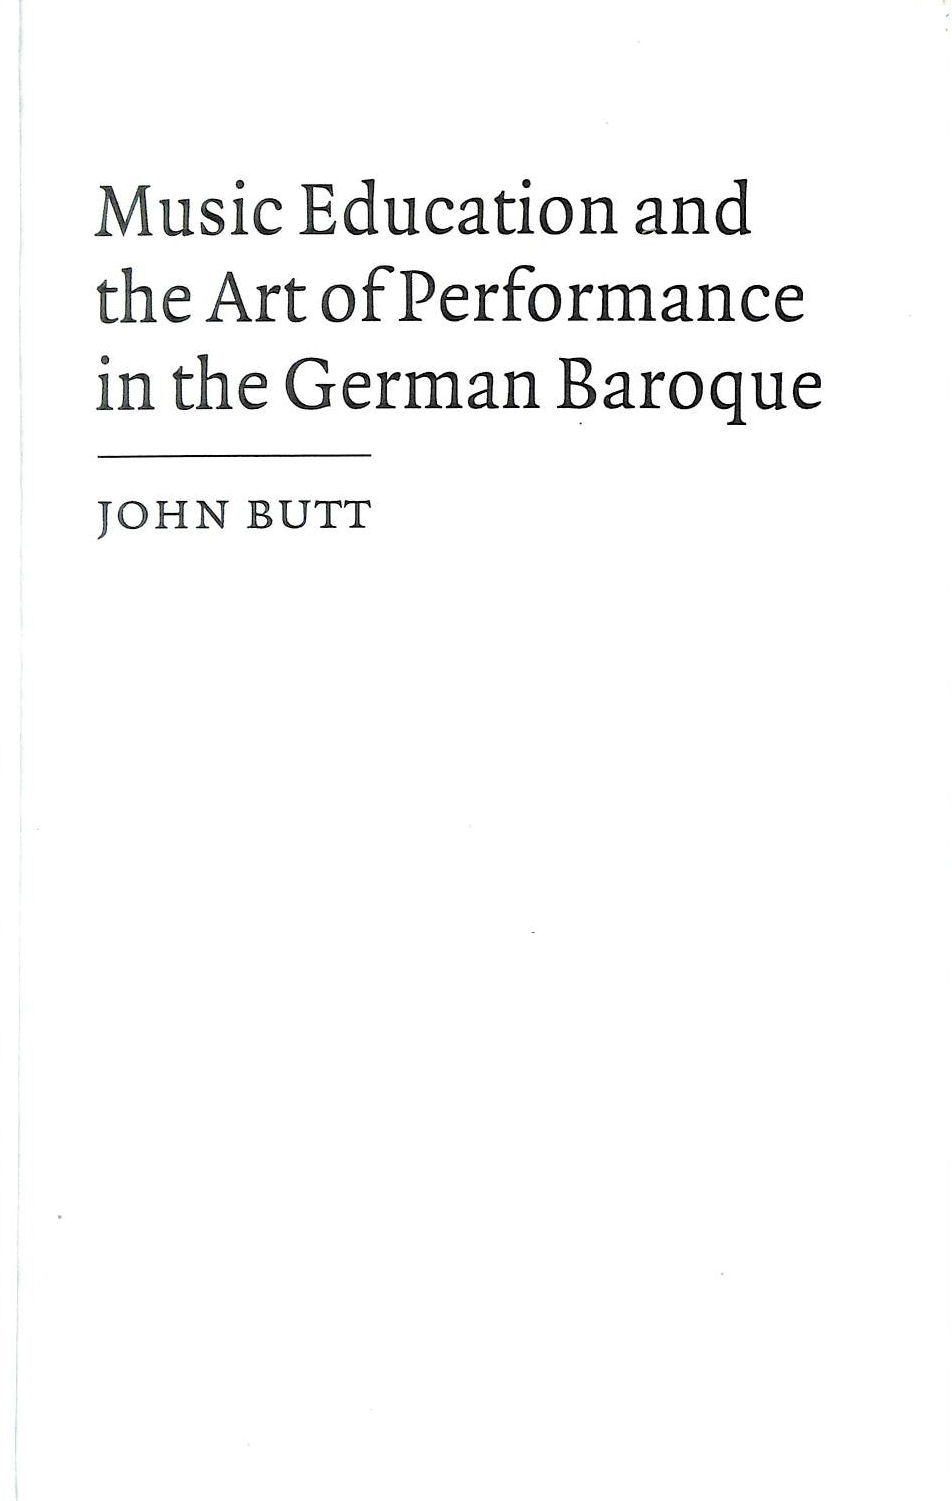 Image for Music Education and the Art of Performance in the German Baroque (Cambridge Musical Texts and Monographs)